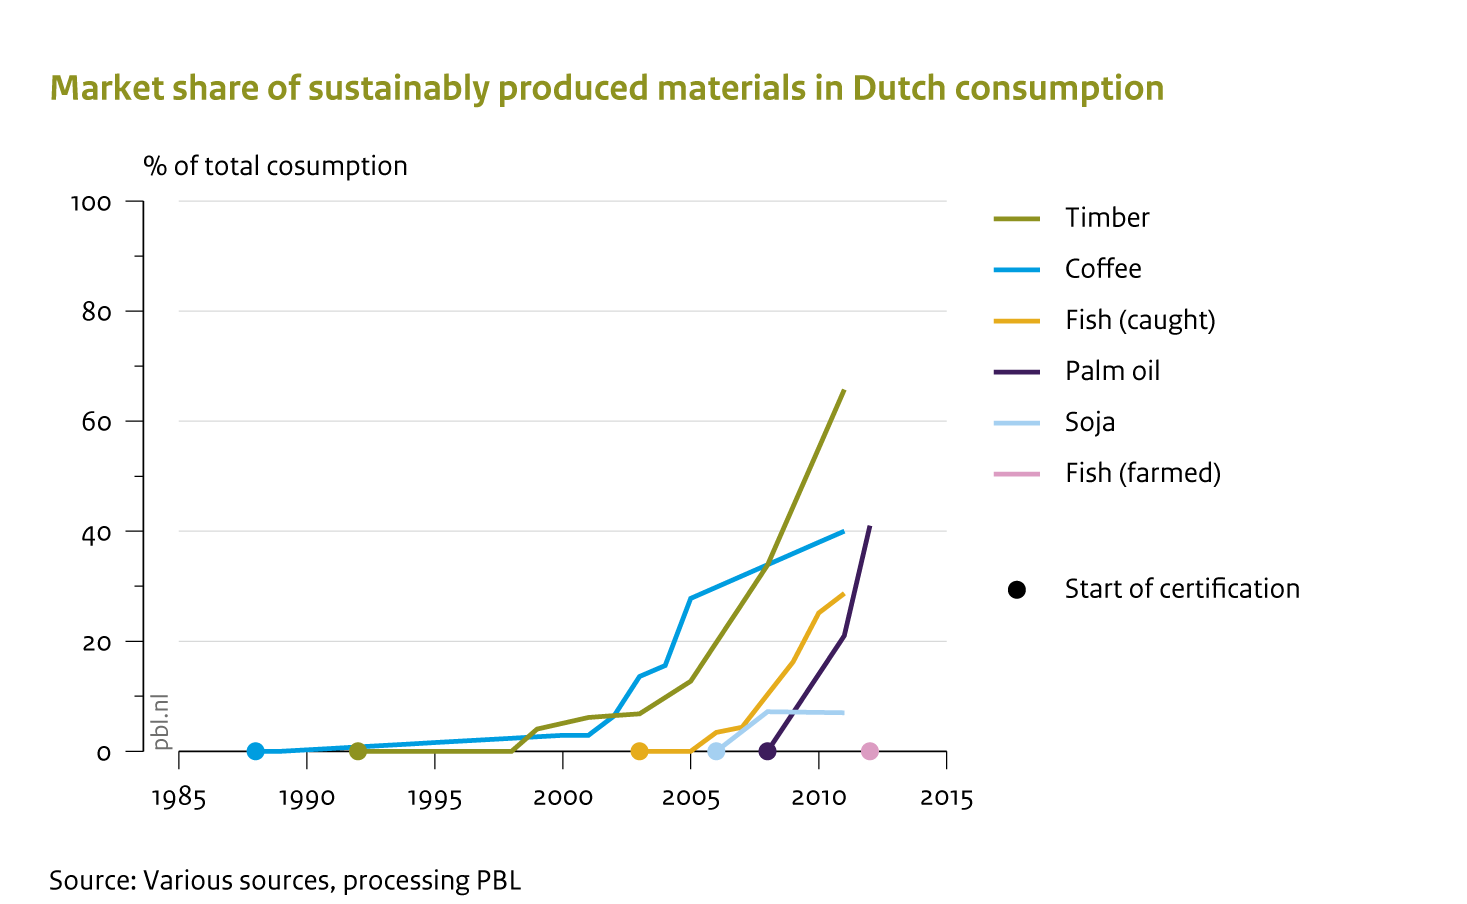 Market shares of certified sustainable products and natural resources have soared over the past two decades in the Netherlands.